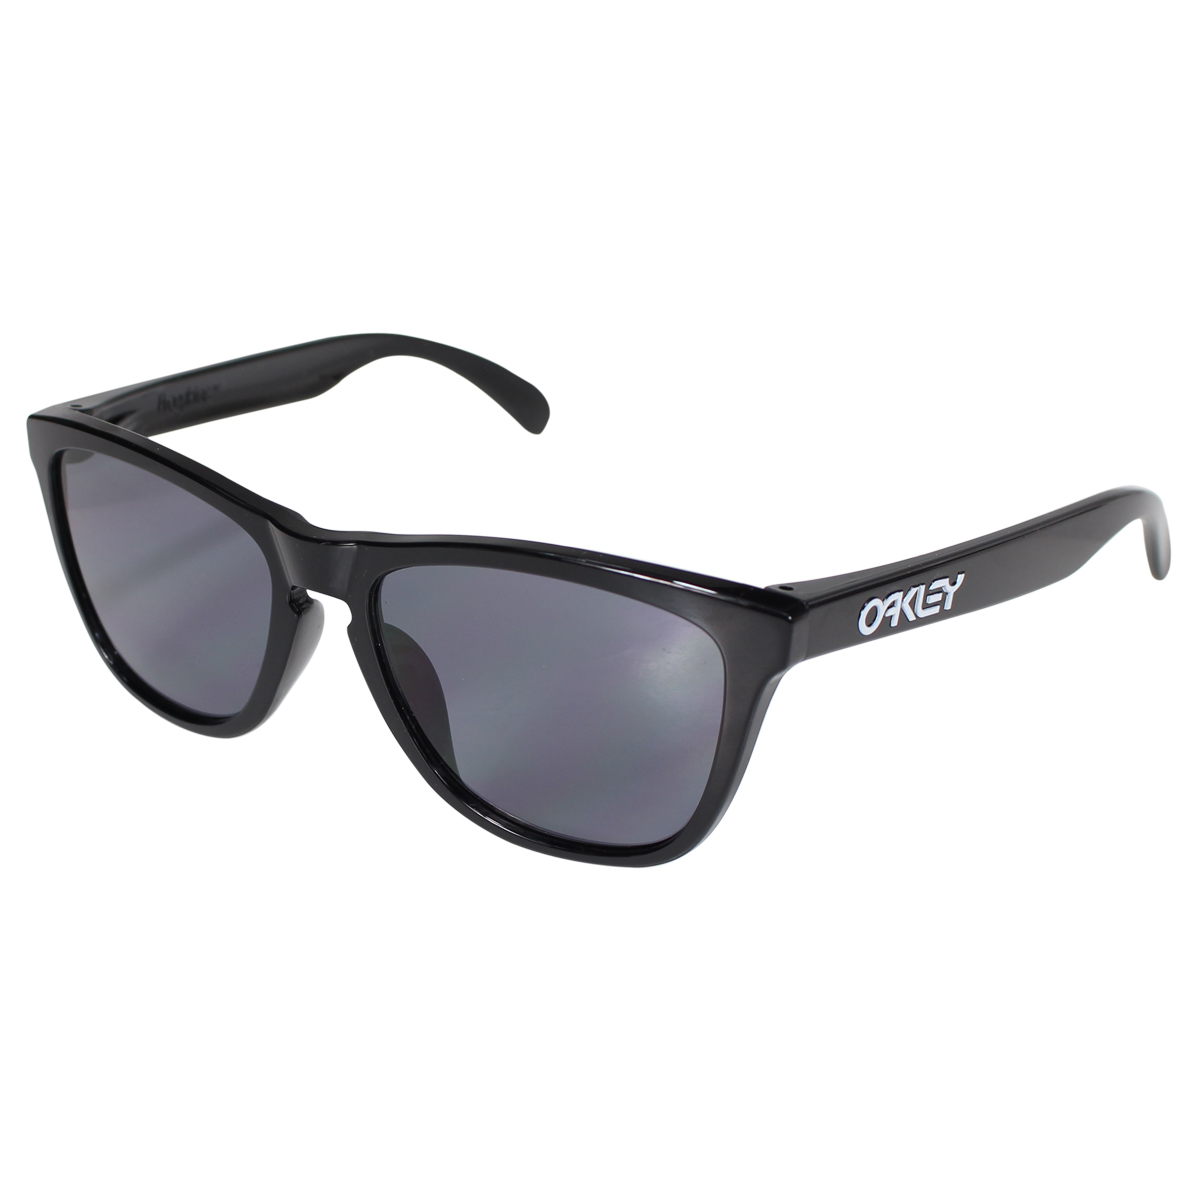 9064d79250  SOLD OUT  Oakley Oakley Sunglasses Frogskins Asian Fit frog skin mens  Womens glasses Asian fitting OO9245-01 polished black   grey unisex  10   8  ...